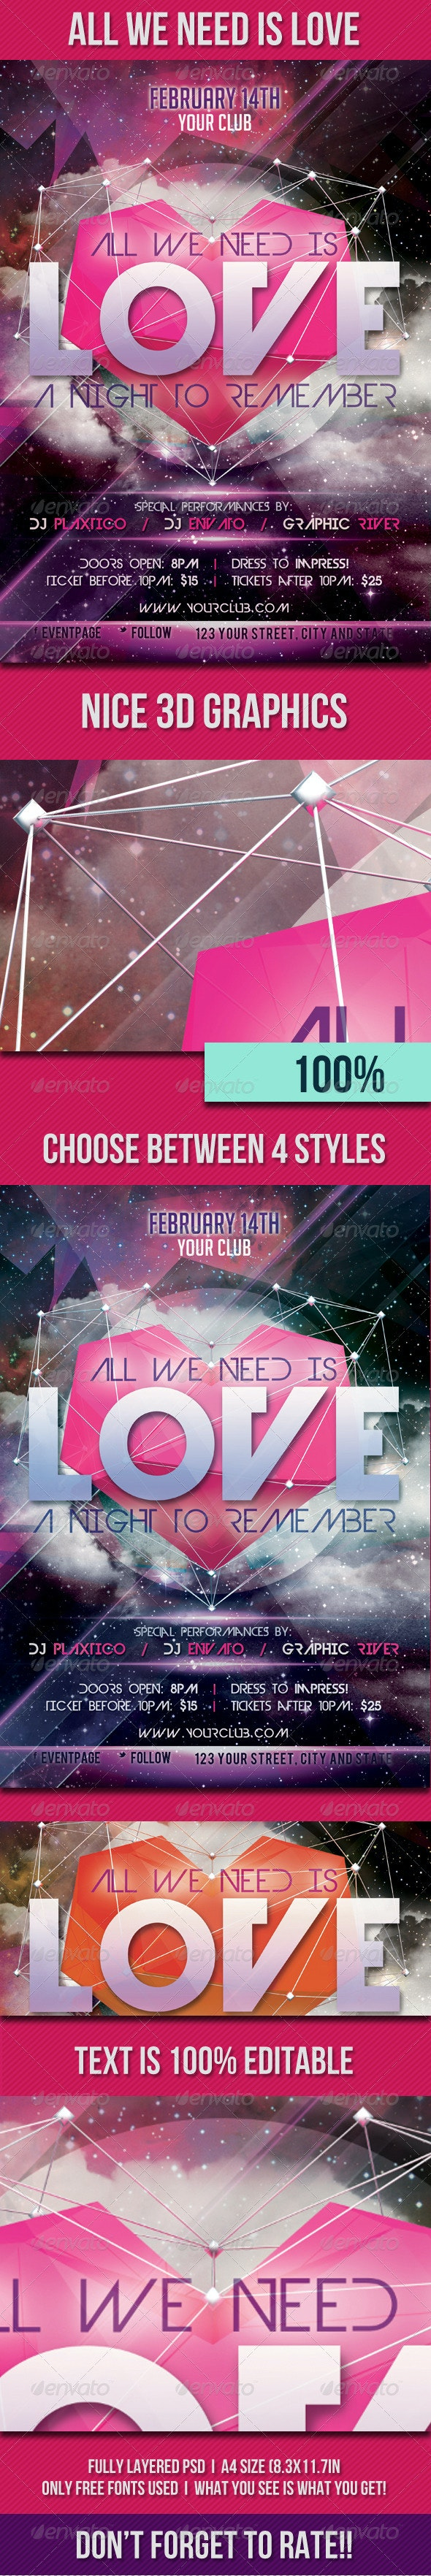 All We Need is Love Flyer Template - Clubs & Parties Events